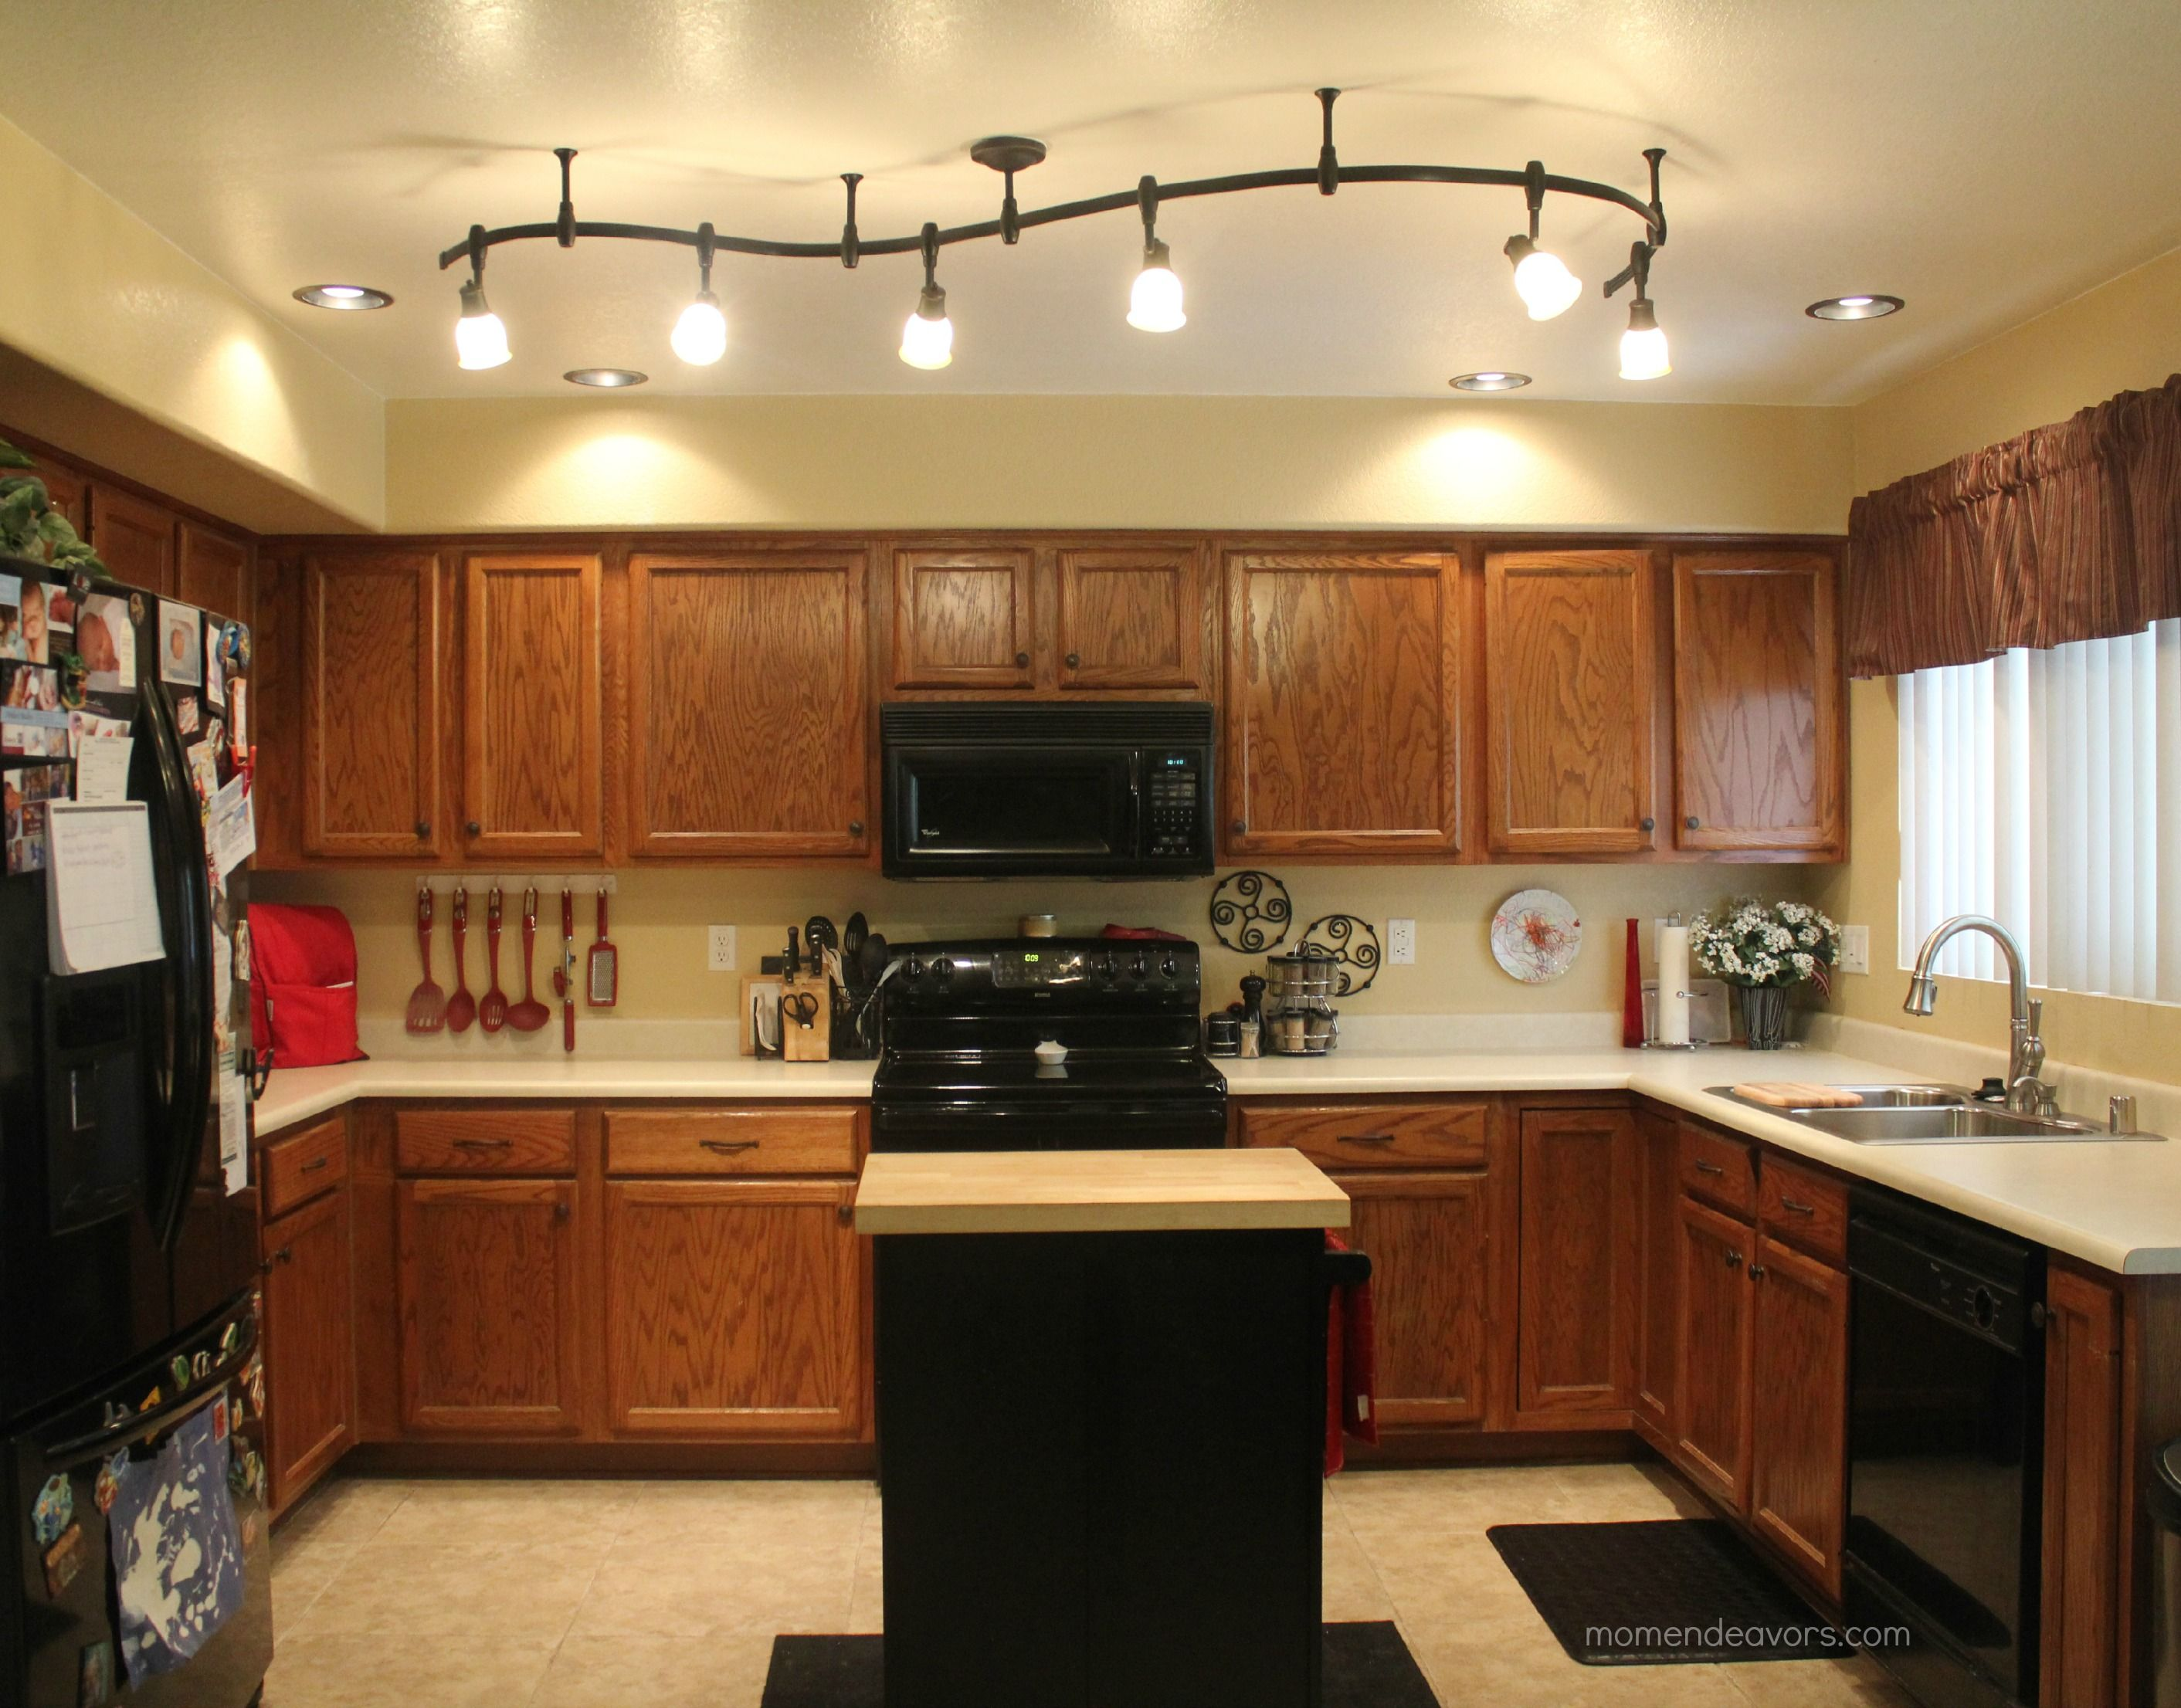 11 stunning photos of kitchen track lighting family kitchen